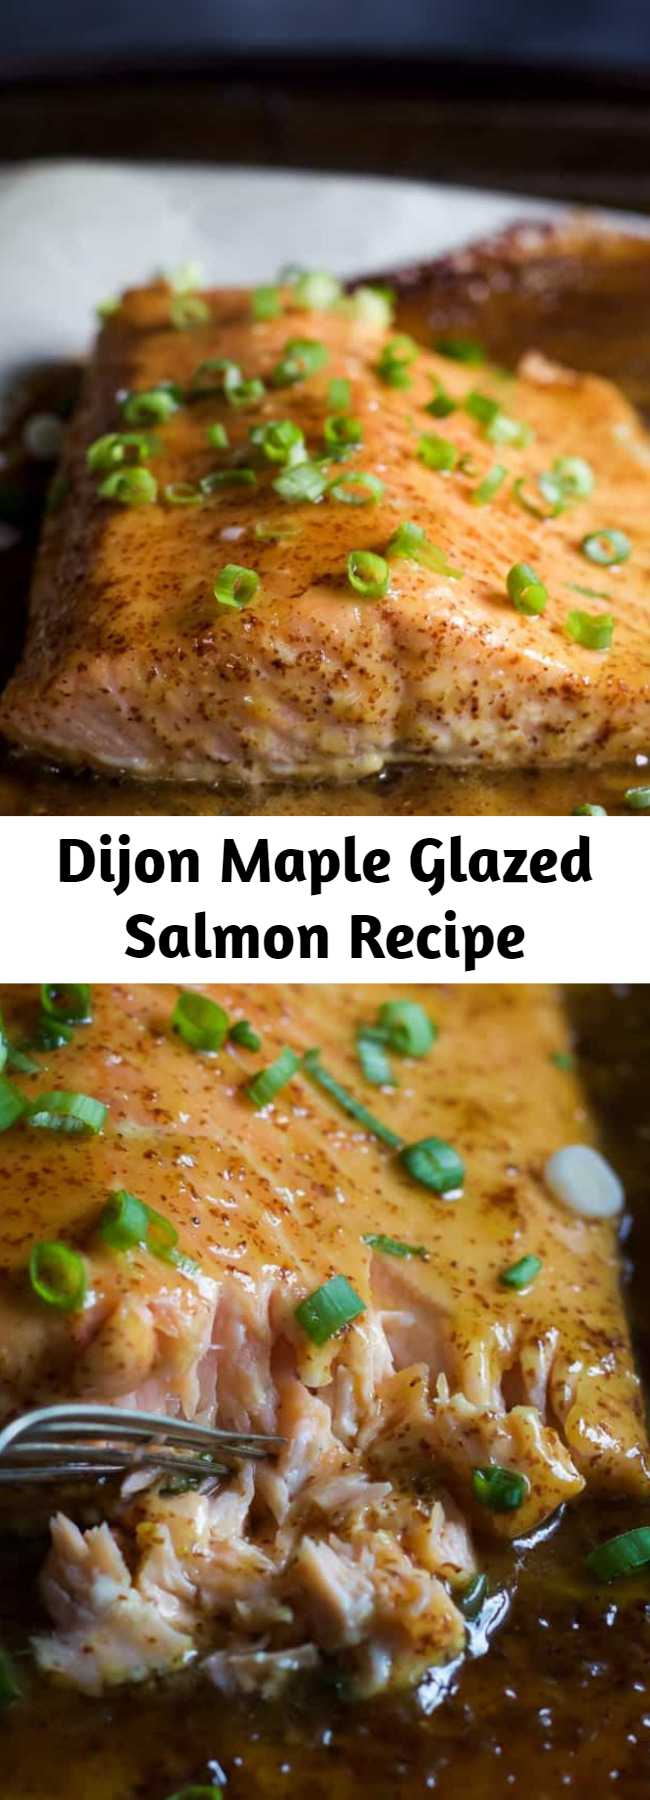 Dijon Maple Glazed Salmon Recipe - Dijon Maple Glazed Salmon is one of my favorite quick & healthy dinner recipes. It's full of tangy and sweet flavors from only 3 ingredients with a whooping 218 calories per serving!